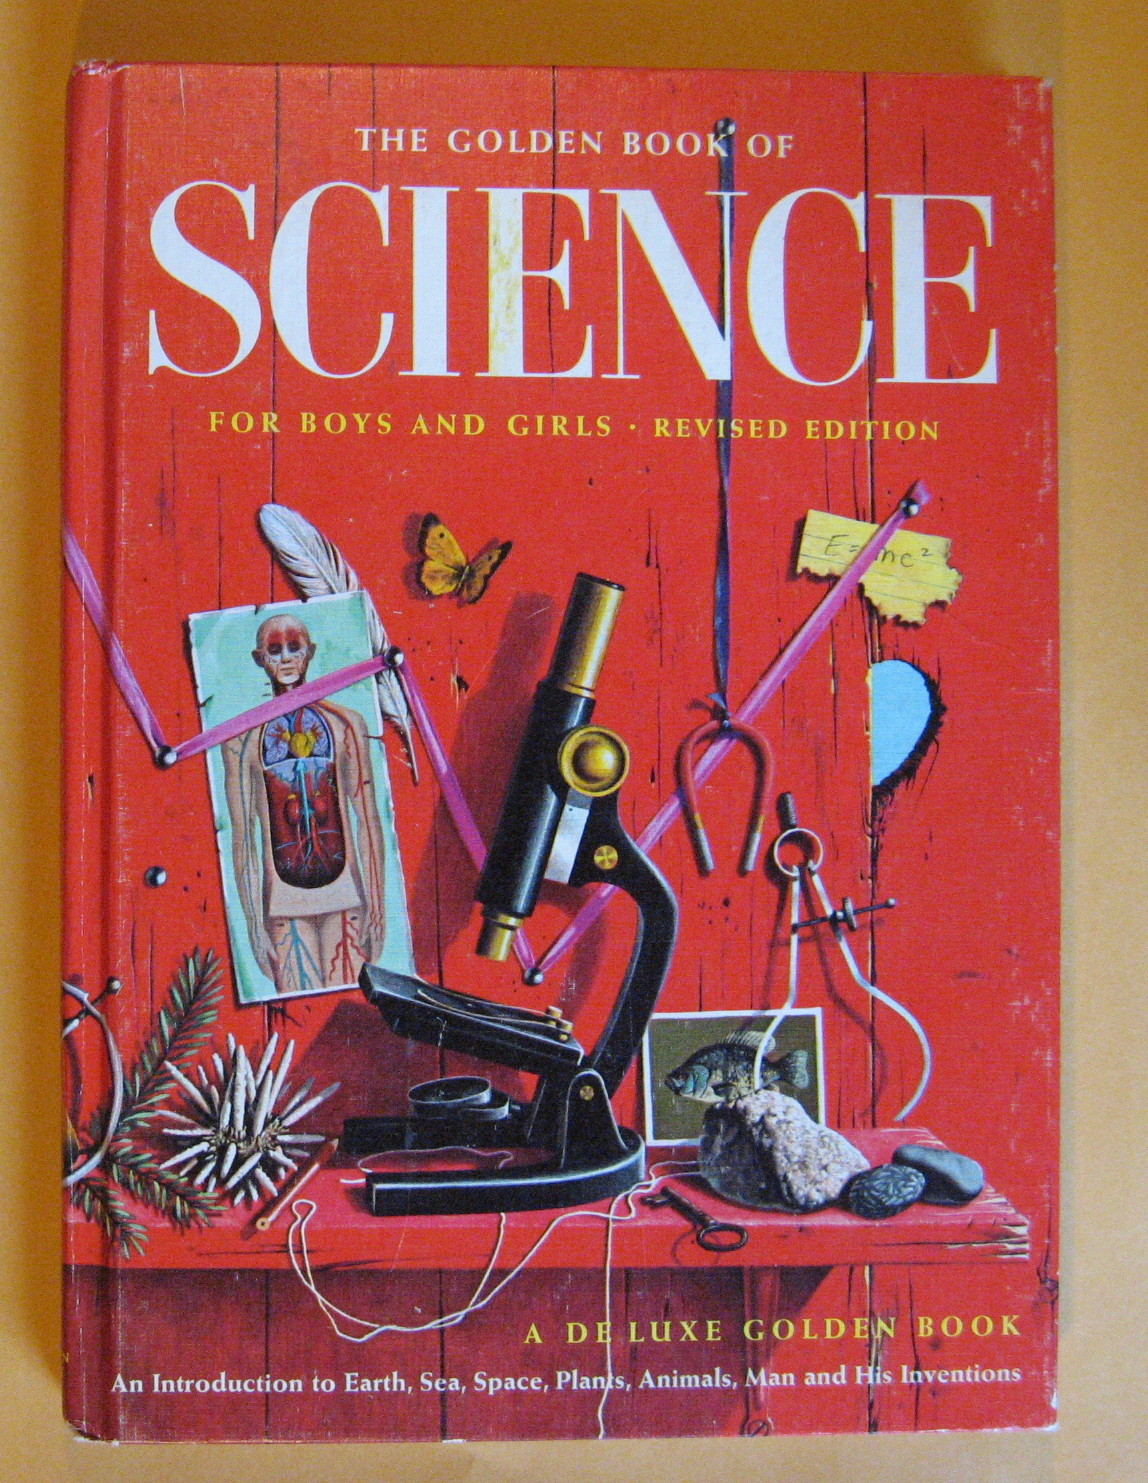 The Golden Book of Science, Packer, Bertha Morris